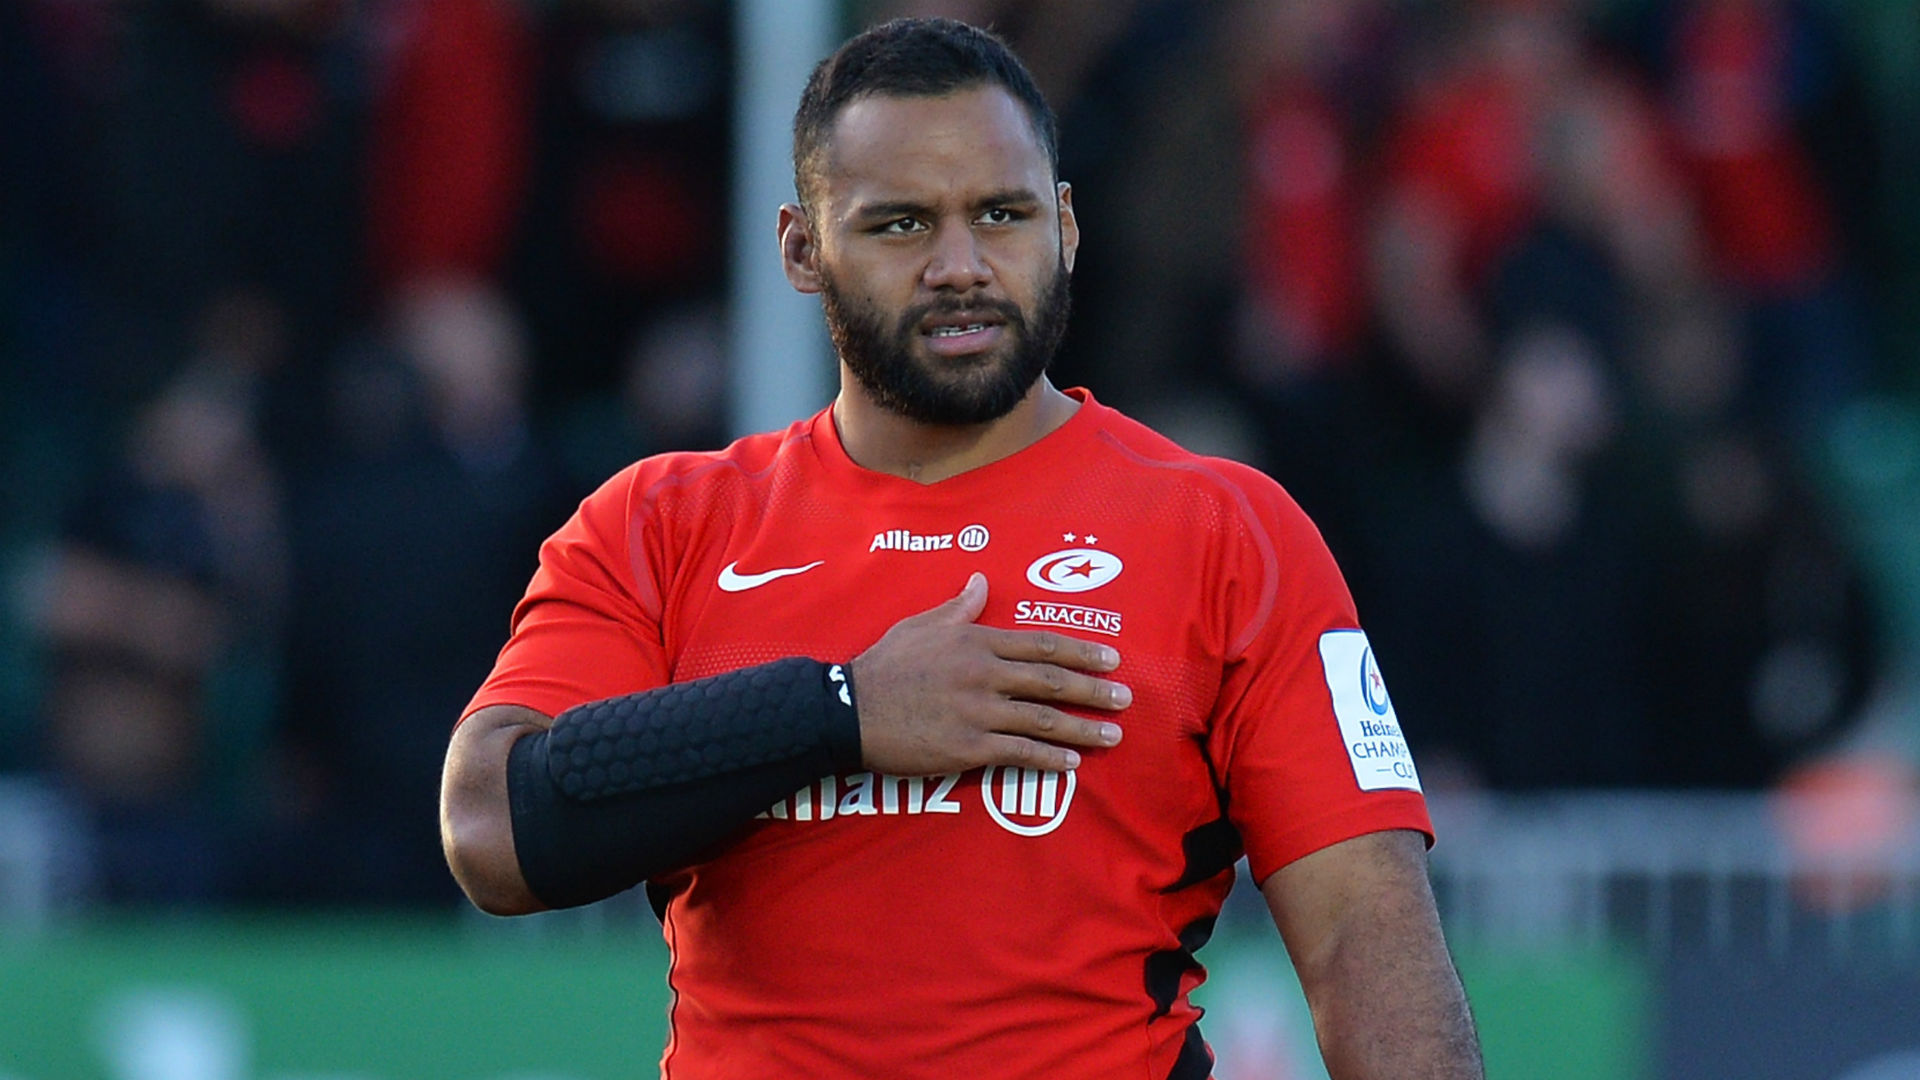 Returning to action after a broken arm proved an anxious experience for Saracens' Billy Vunipola, who is steadily regaining his poise.